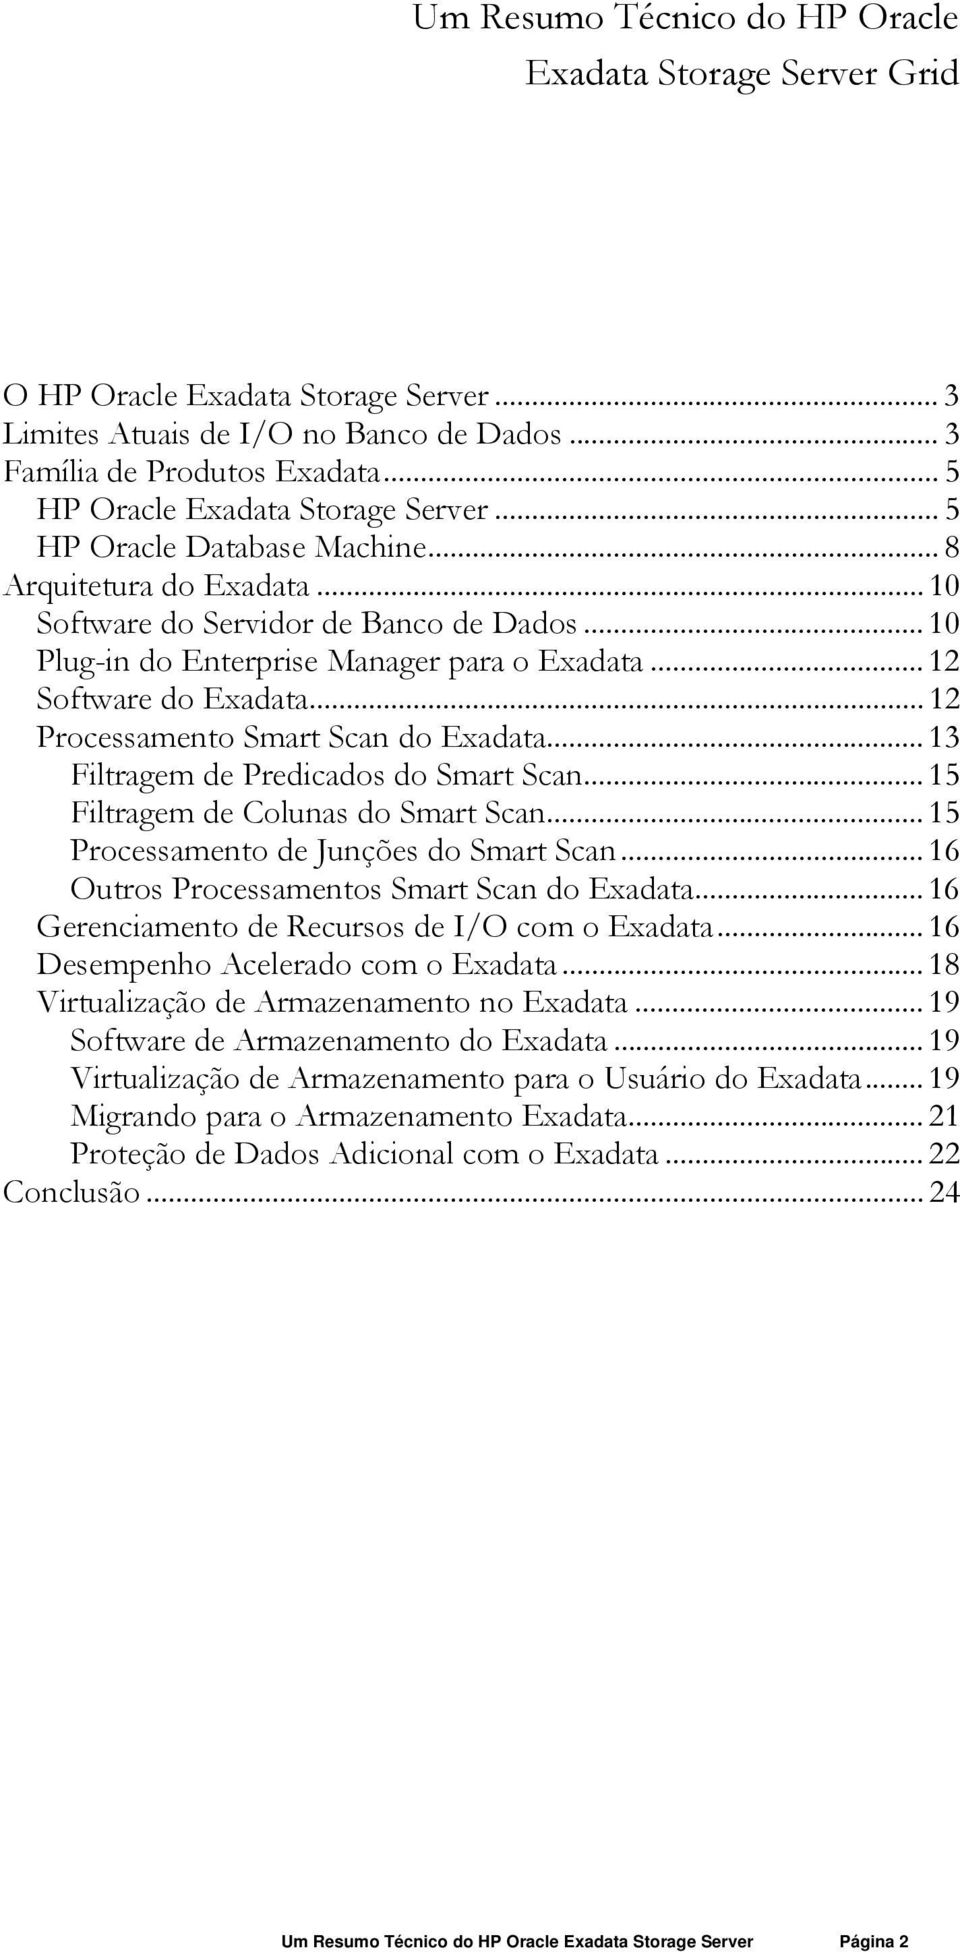 .. 12 Software do Exadata... 12 Processamento Smart Scan do Exadata... 13 Filtragem de Predicados do Smart Scan... 15 Filtragem de Colunas do Smart Scan... 15 Processamento de Junções do Smart Scan.